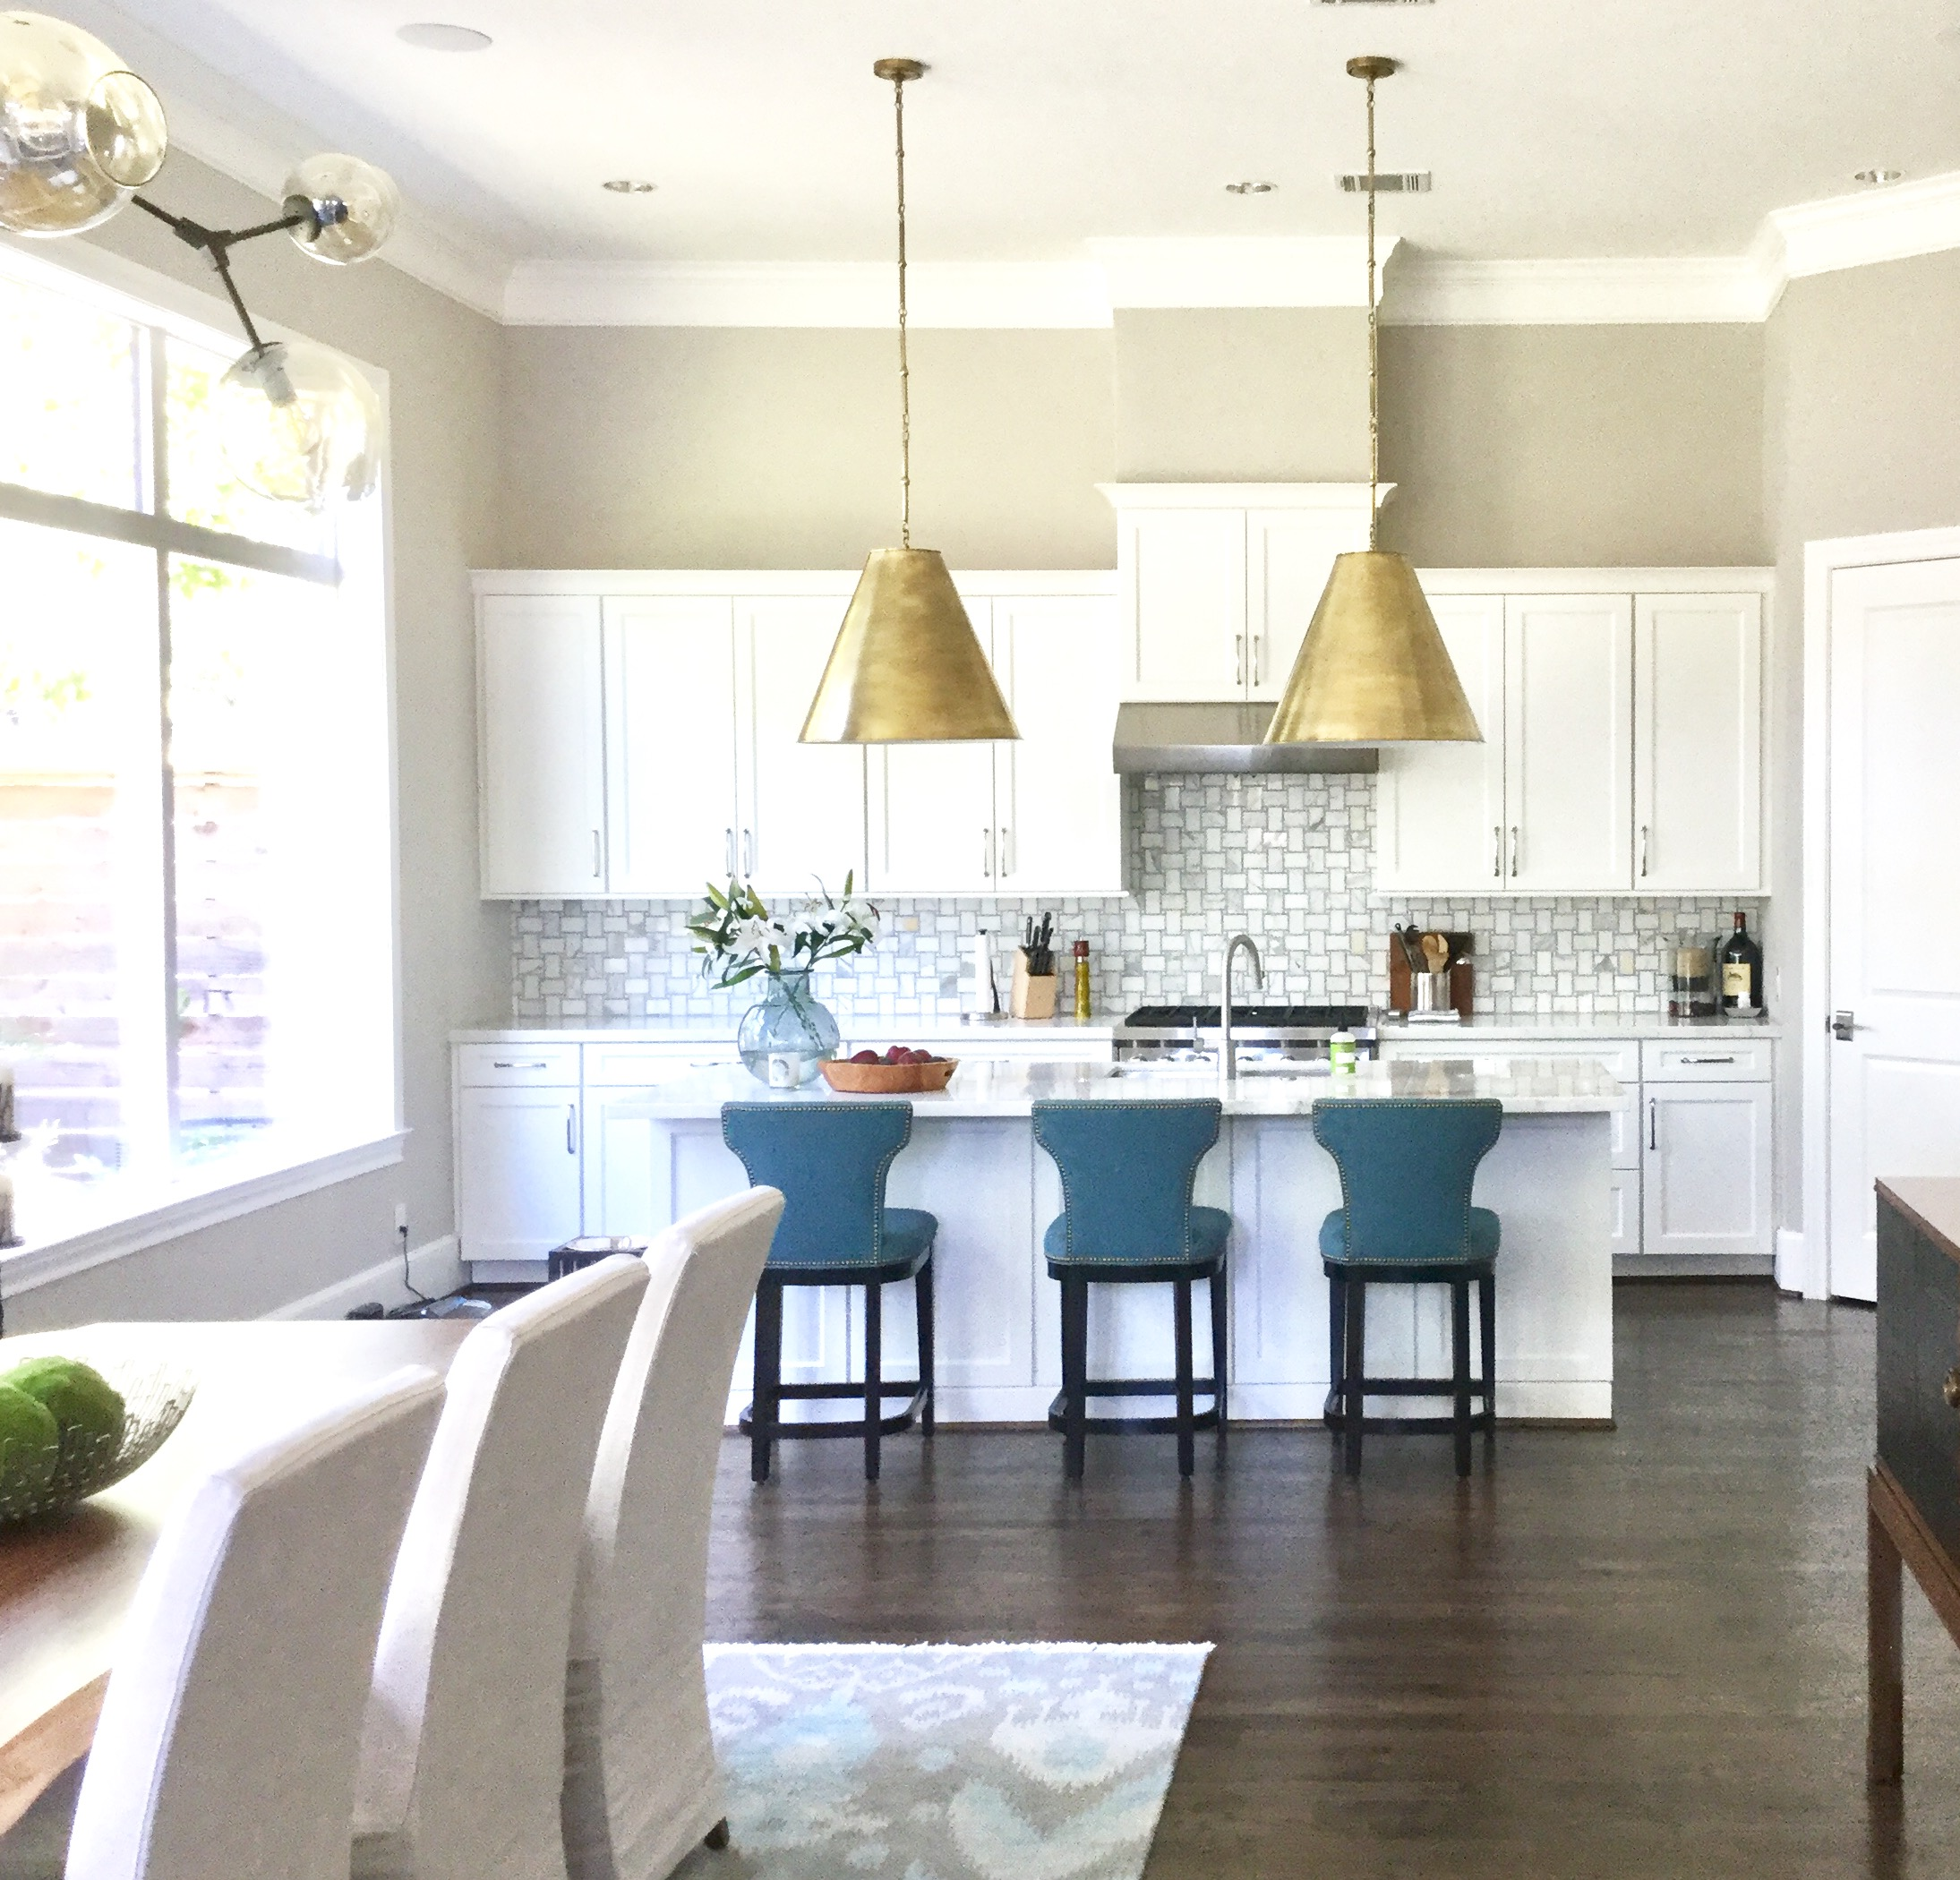 Over Island Lighting In Kitchen 7 Considerations For Kitchen Island Pendant Lighting Selection